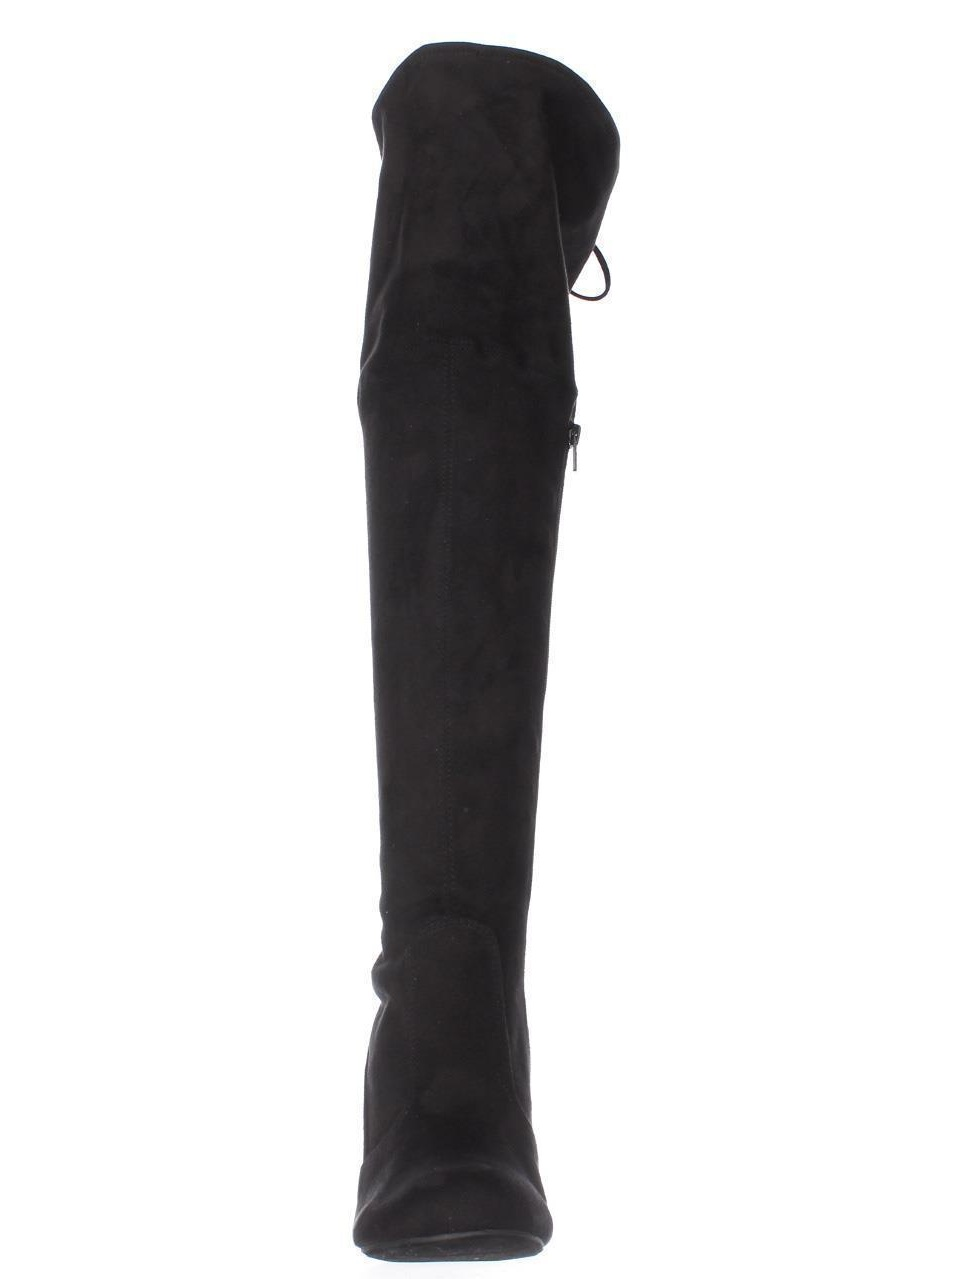 Stretch Suede Thigh High Block High Heel Boots With Tie Up Back Detail BE44